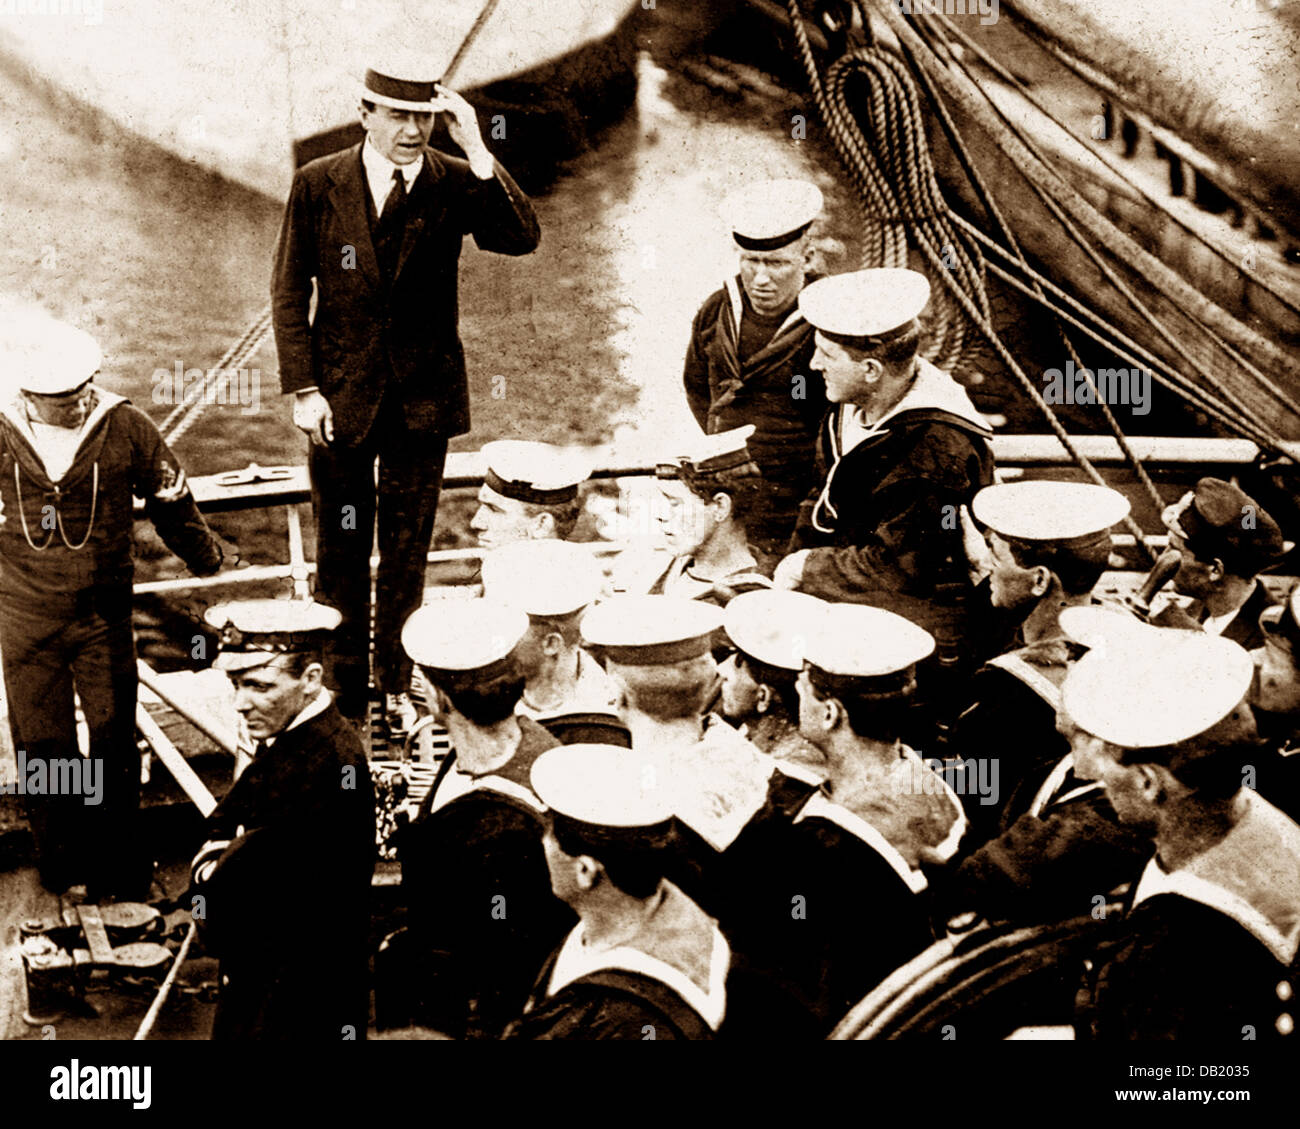 Scott's Antarctic Expedition Captain Scott addressing the crew of the Terra Nova prior to departure probably - Stock Image